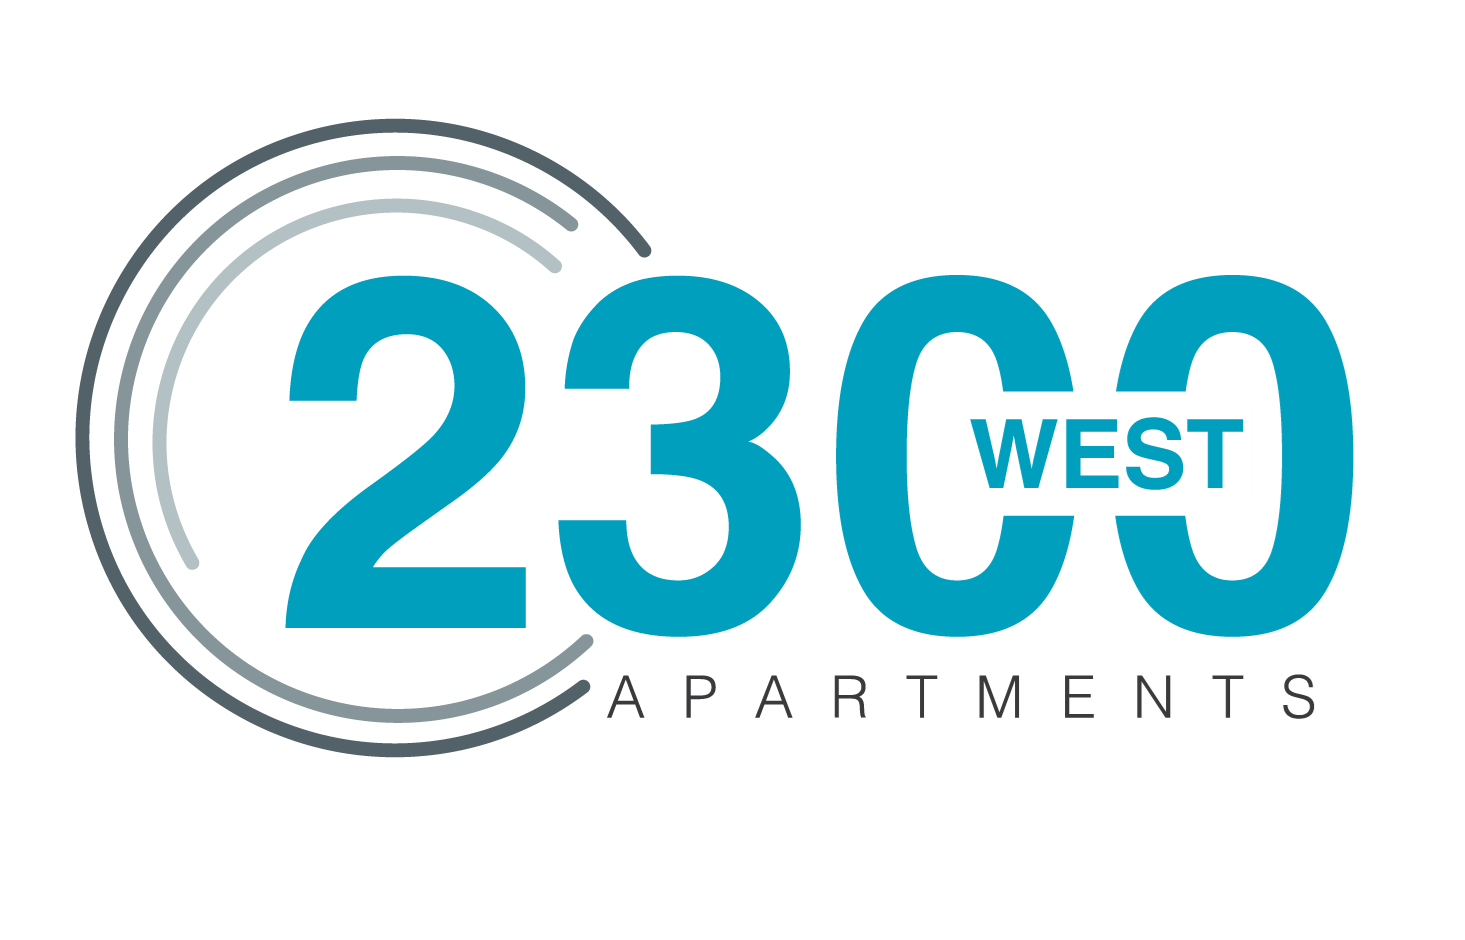 2300 West Apartments 89502